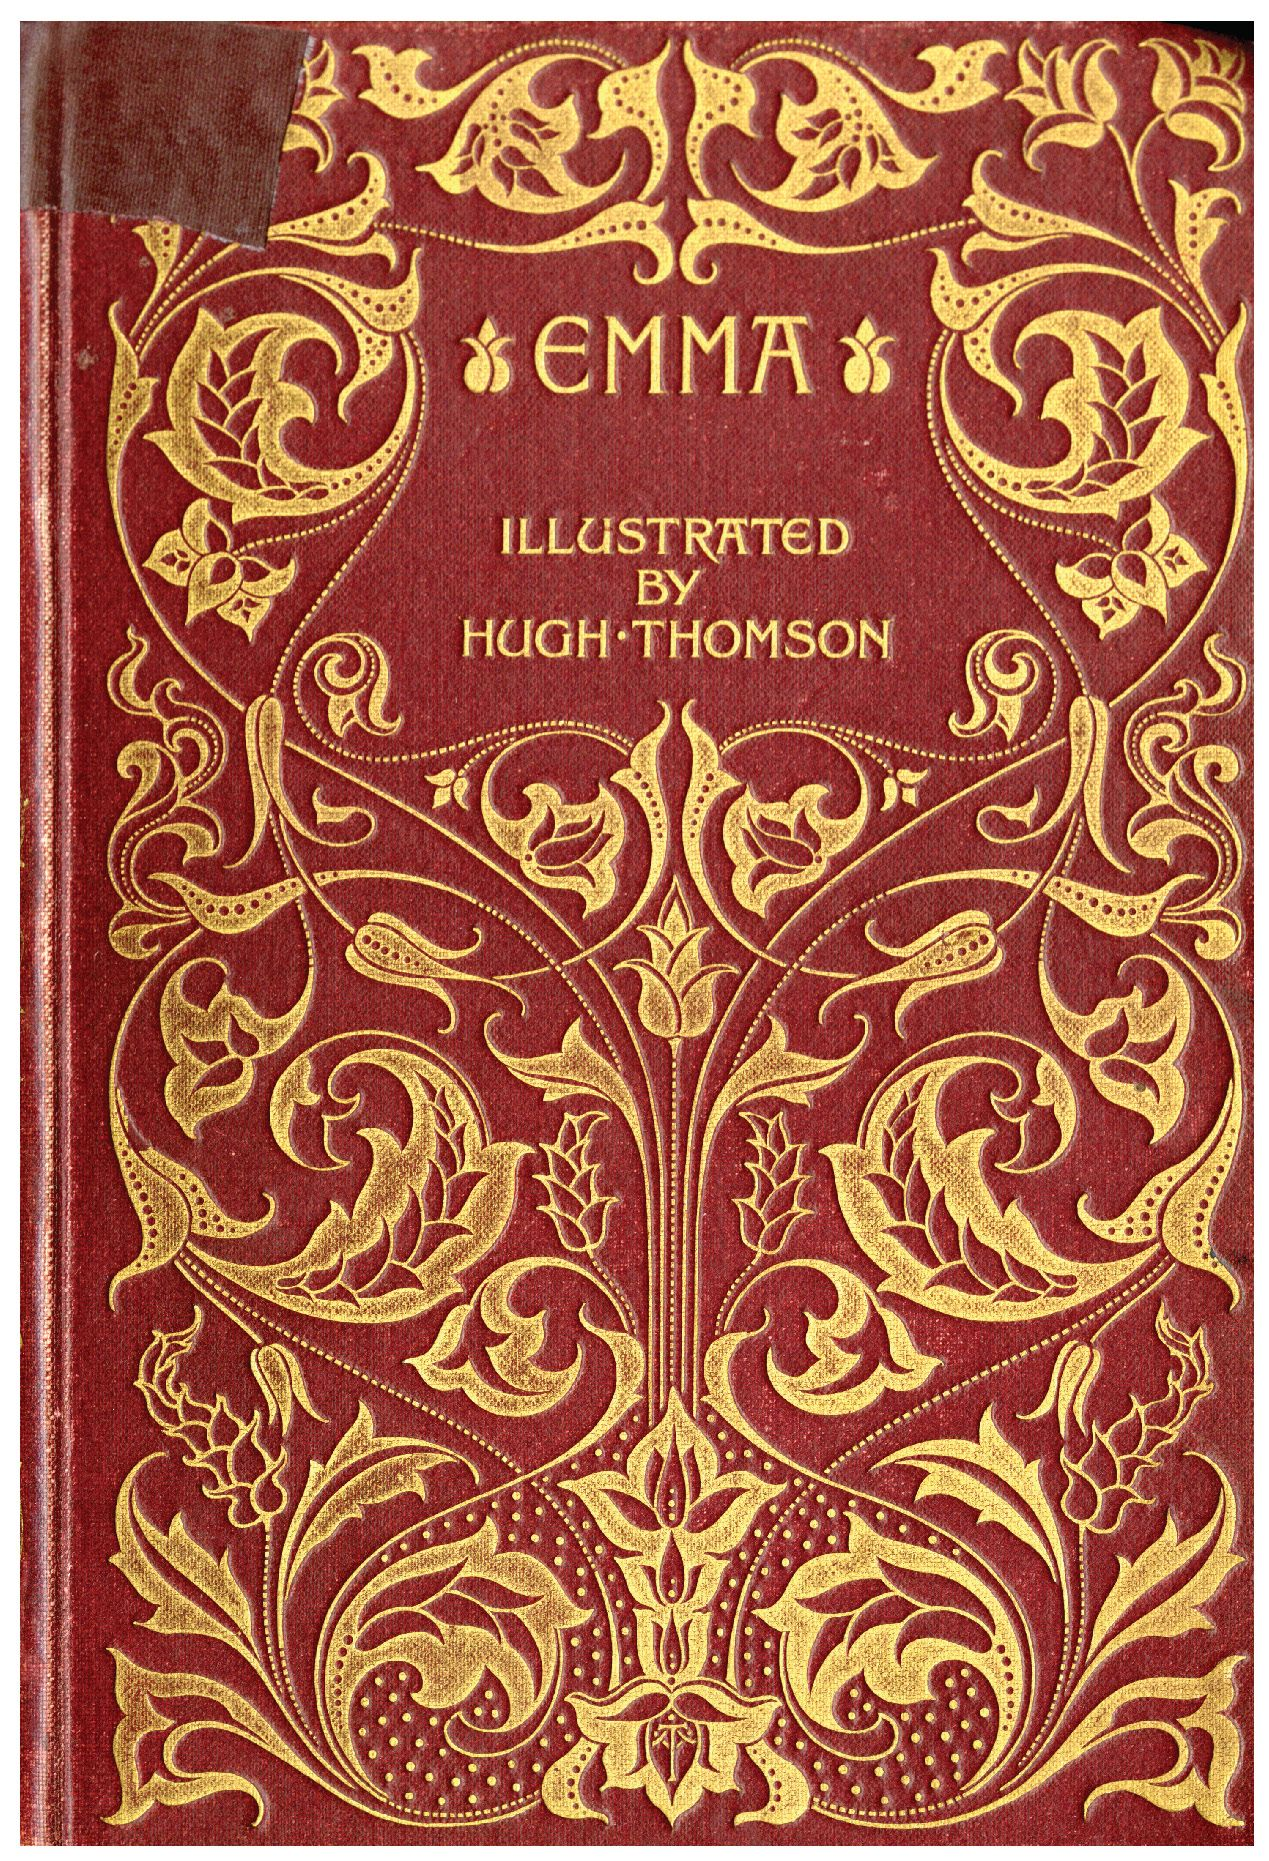 A Look At Two Hundred Years Of Jane Austen Book Covers Pictured Hugh Thomson